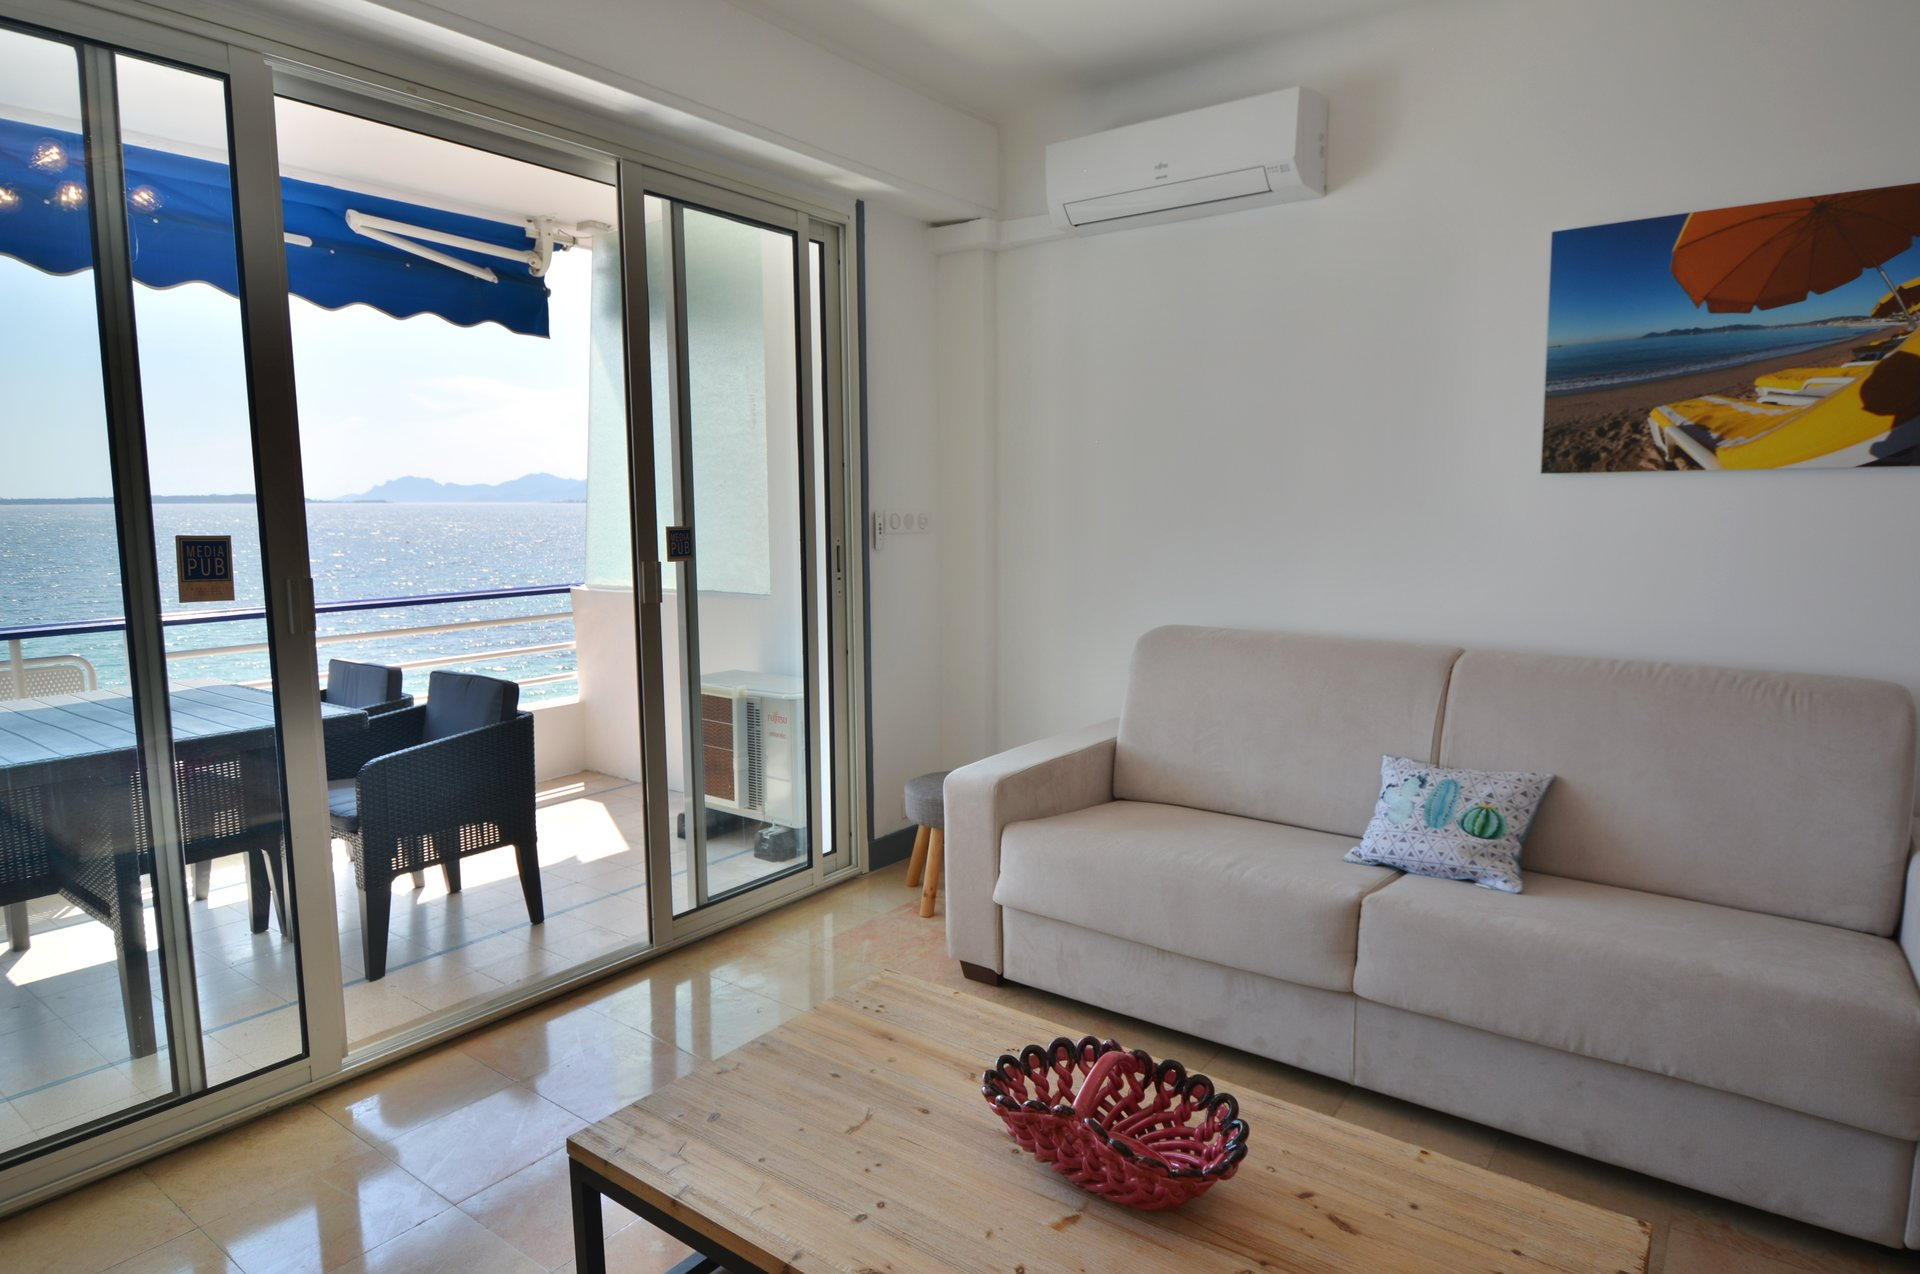 Studio apartment to rent - Juan les Pins waterfront